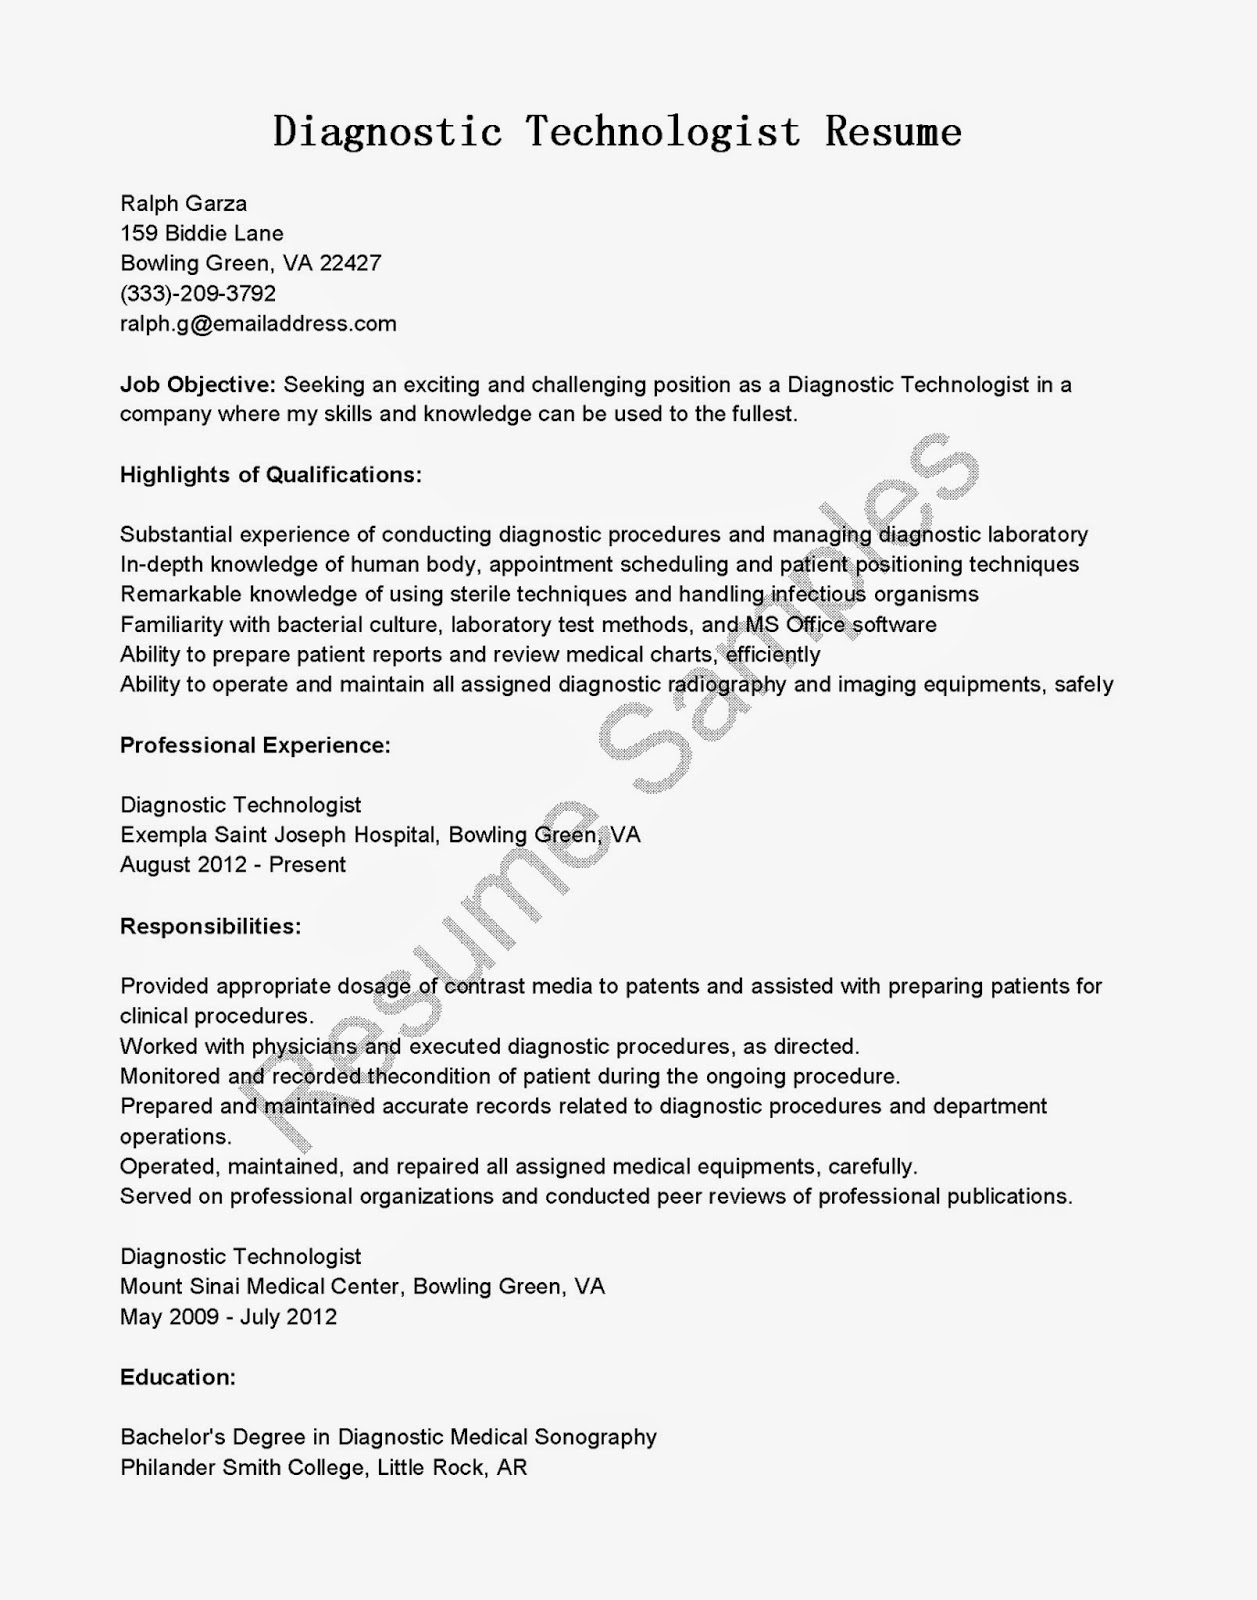 cheap dissertation chapter writer website us esl critical essay